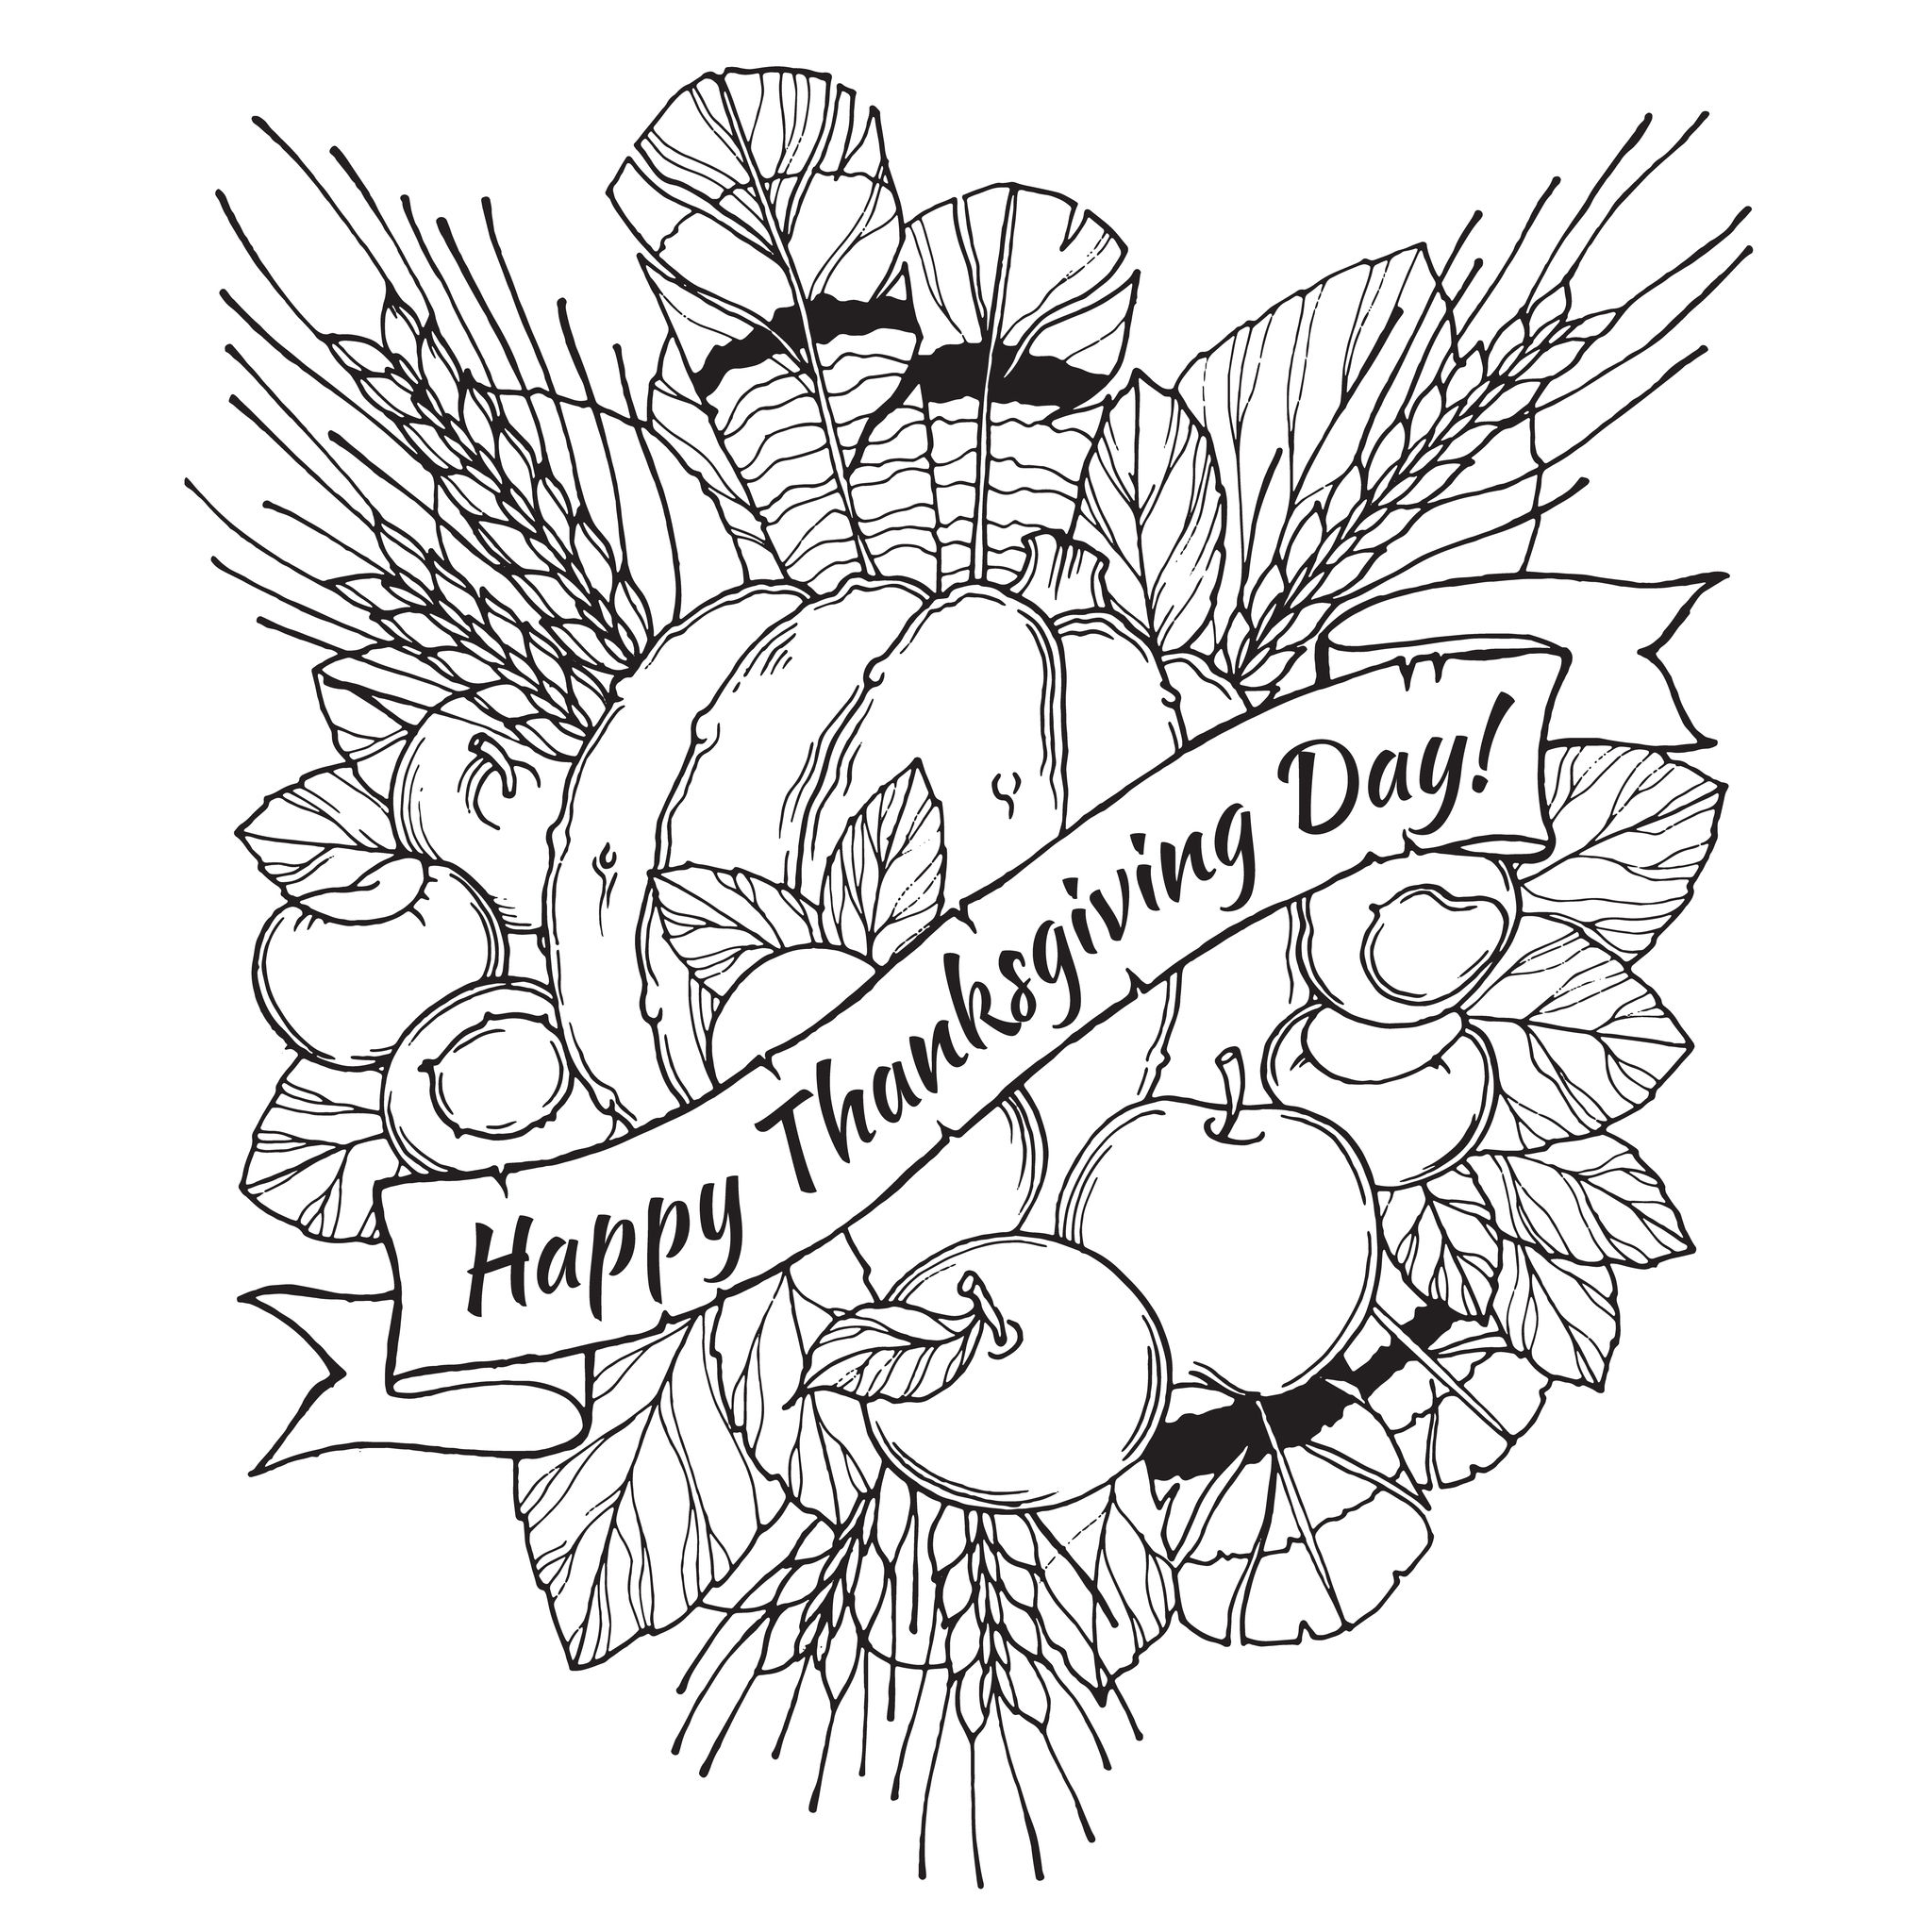 Thanksgiving Day Drawing To Print And Color With Feathers Chestnuts Vegetables Fruits Drawn In Cartoon Style